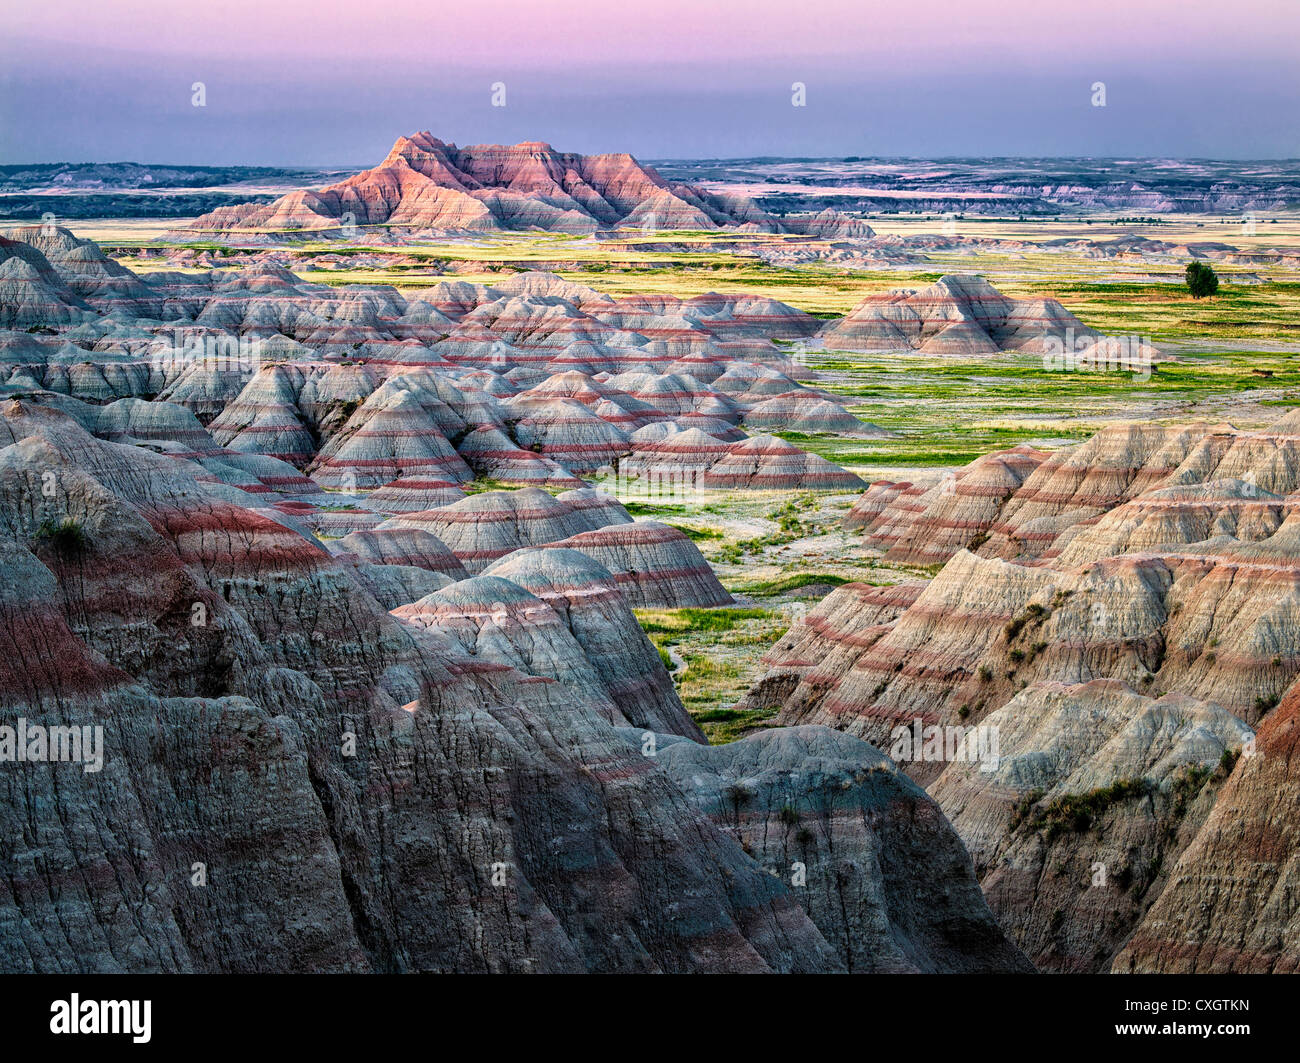 Bunte Formationen in Badlands Nationalpark, South Dakota Stockbild